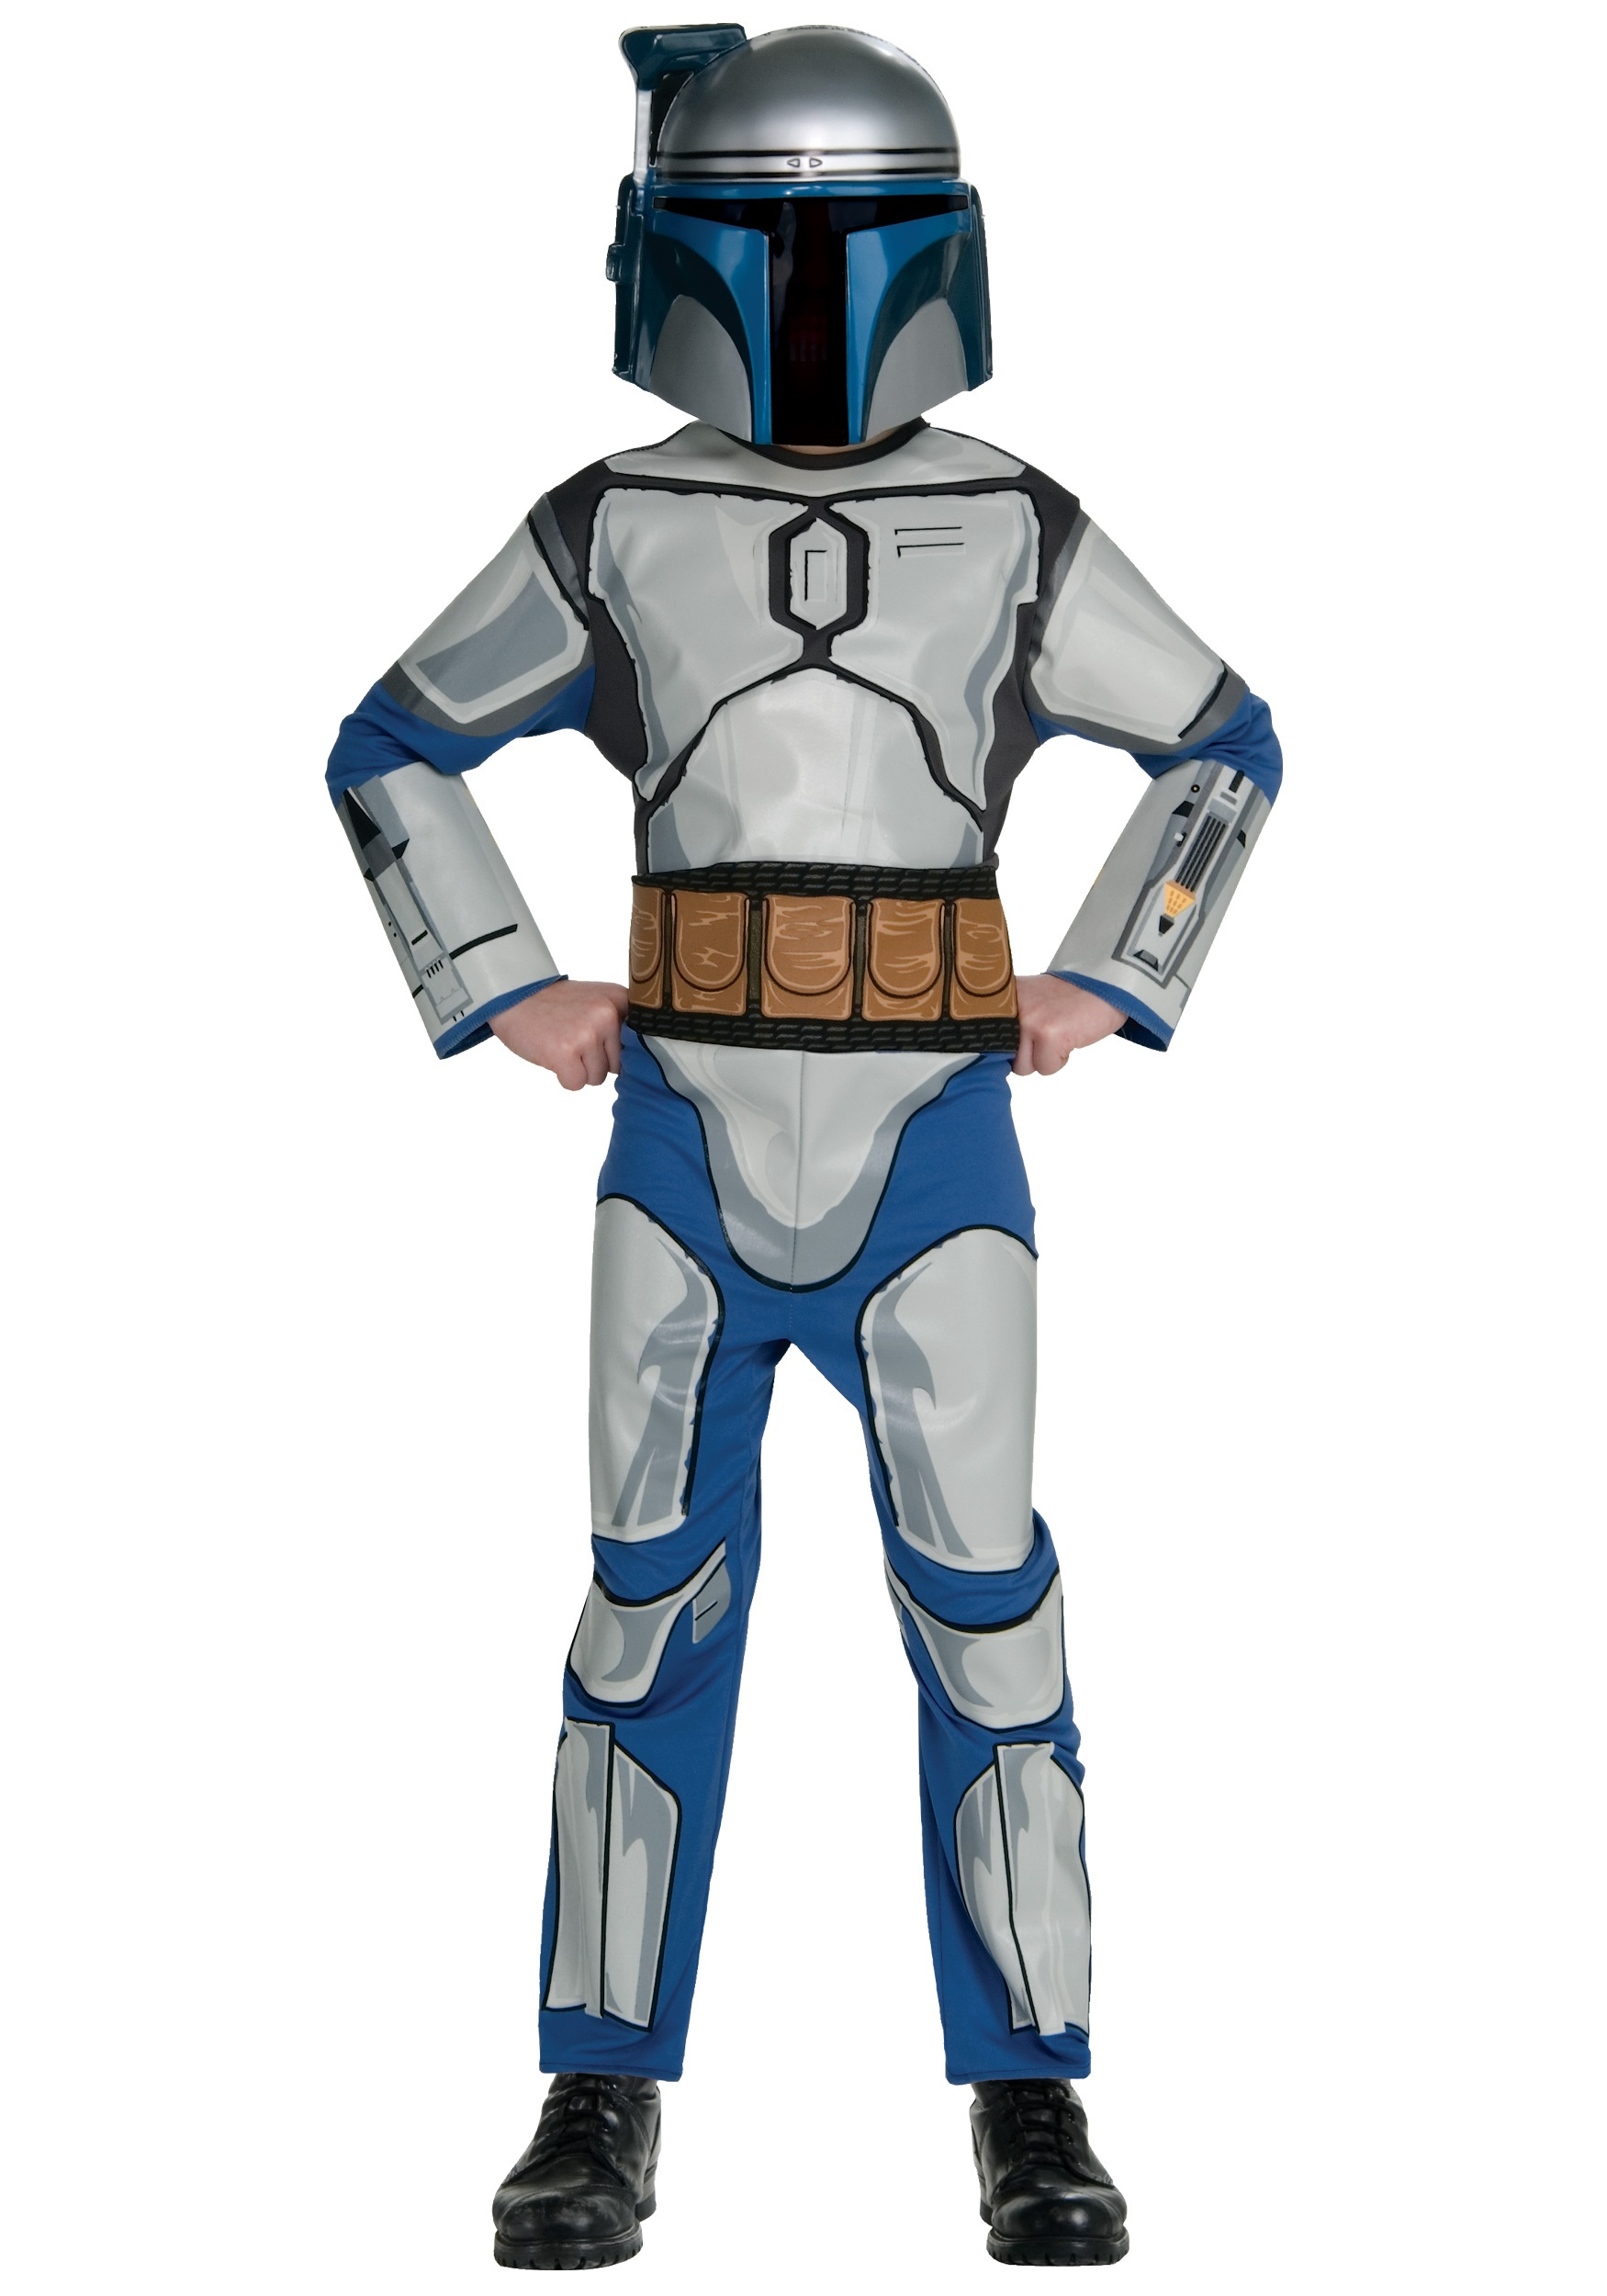 Child Jango Fett Costume - Kids Star Wars Halloween Costume